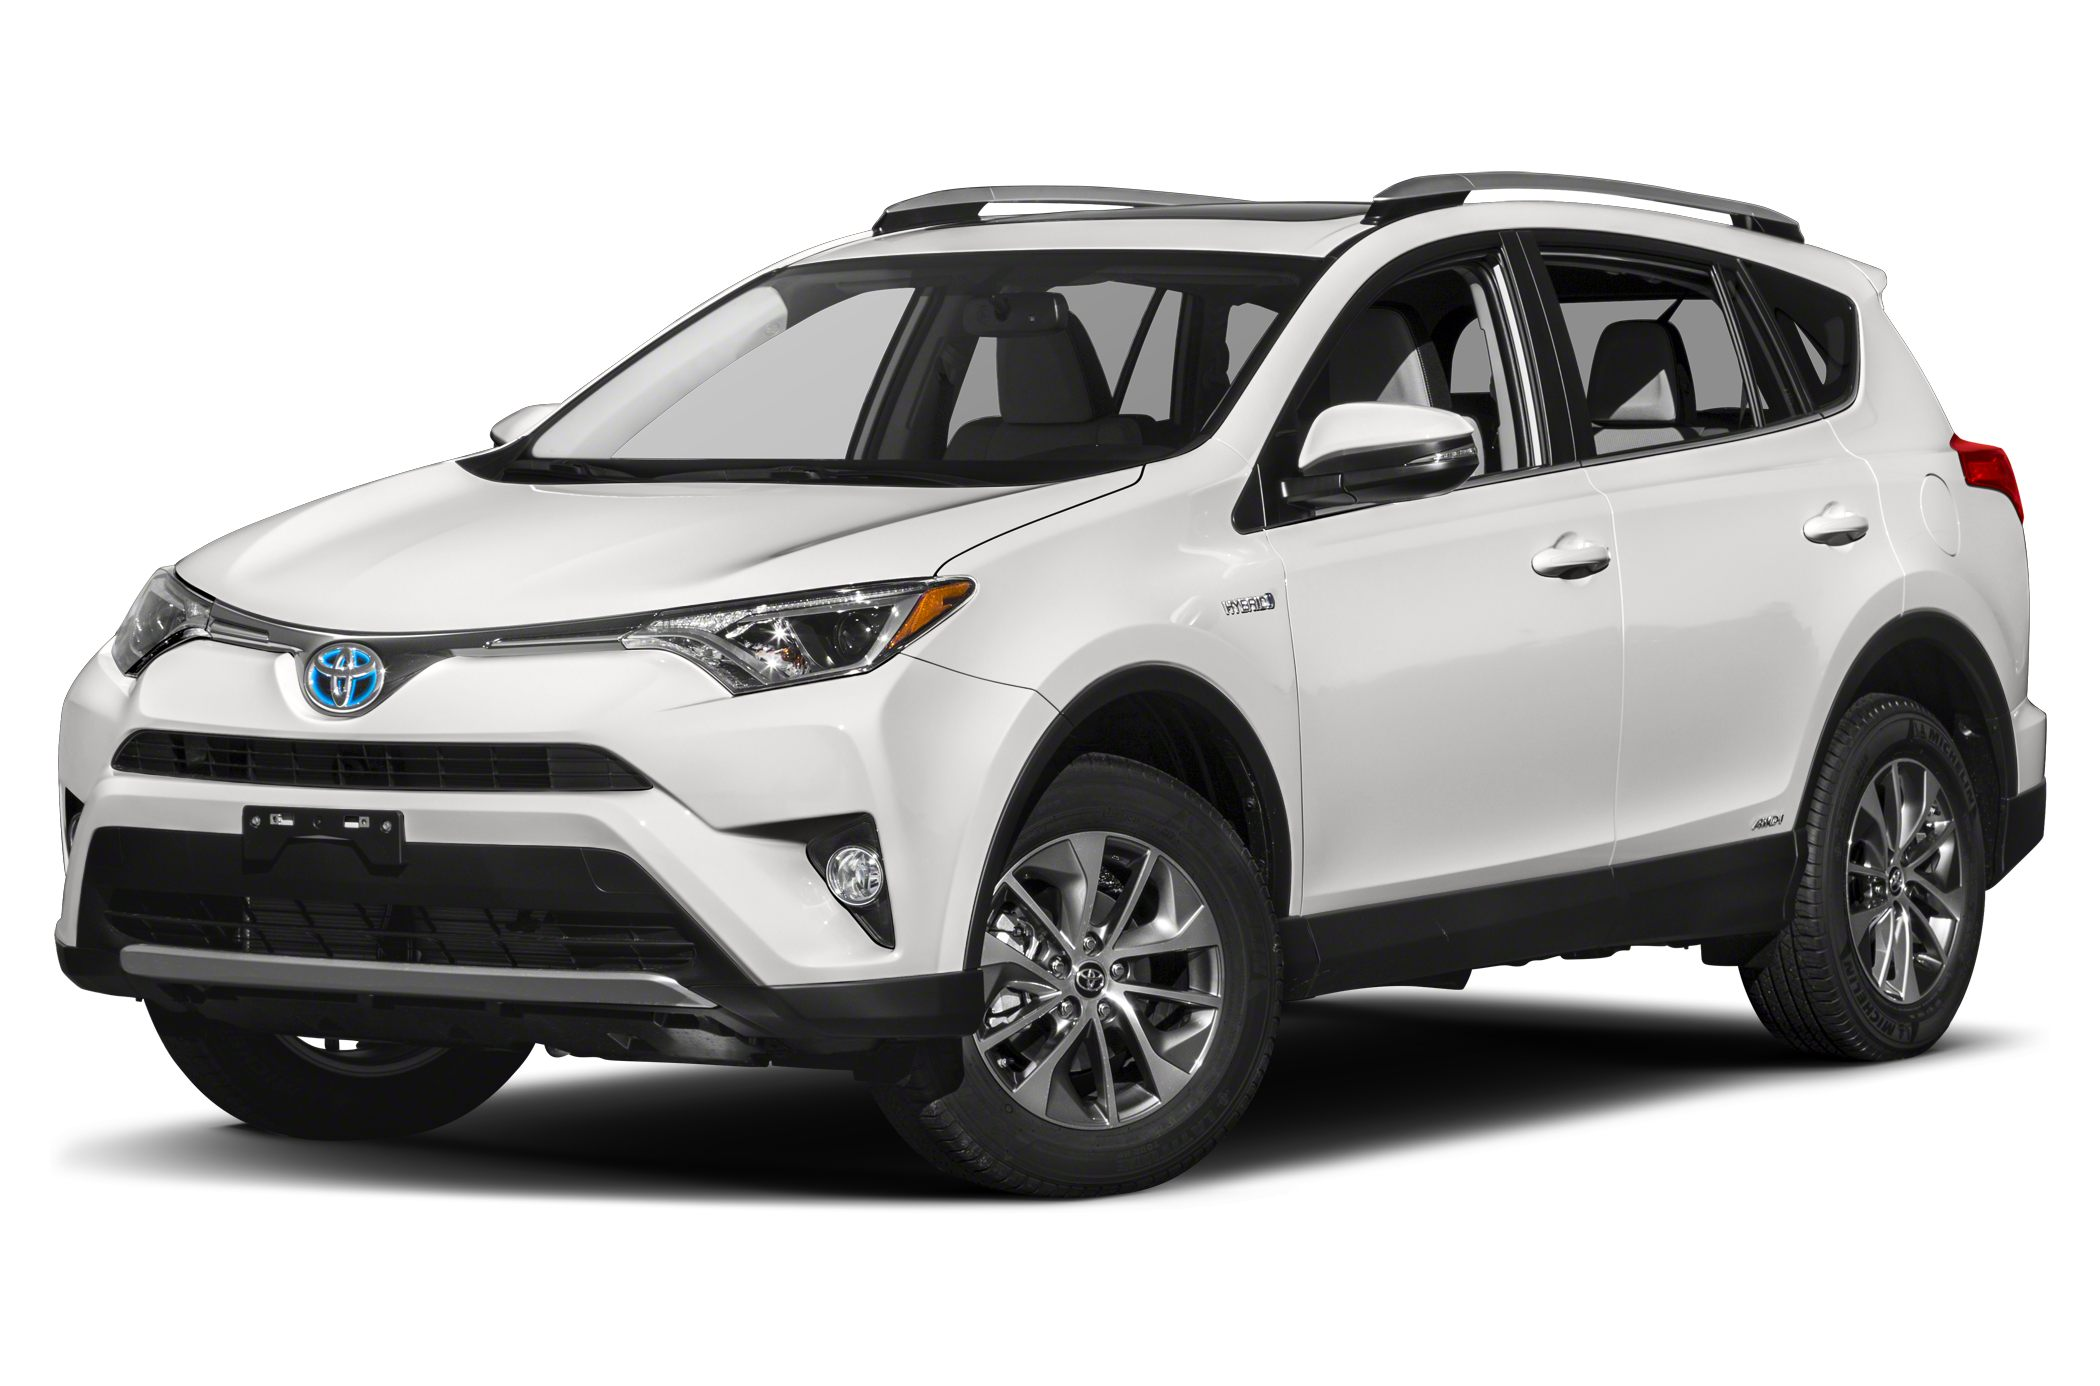 Xle 4dr All Wheel Drive 2016 Toyota Rav4 Hybrid Photos